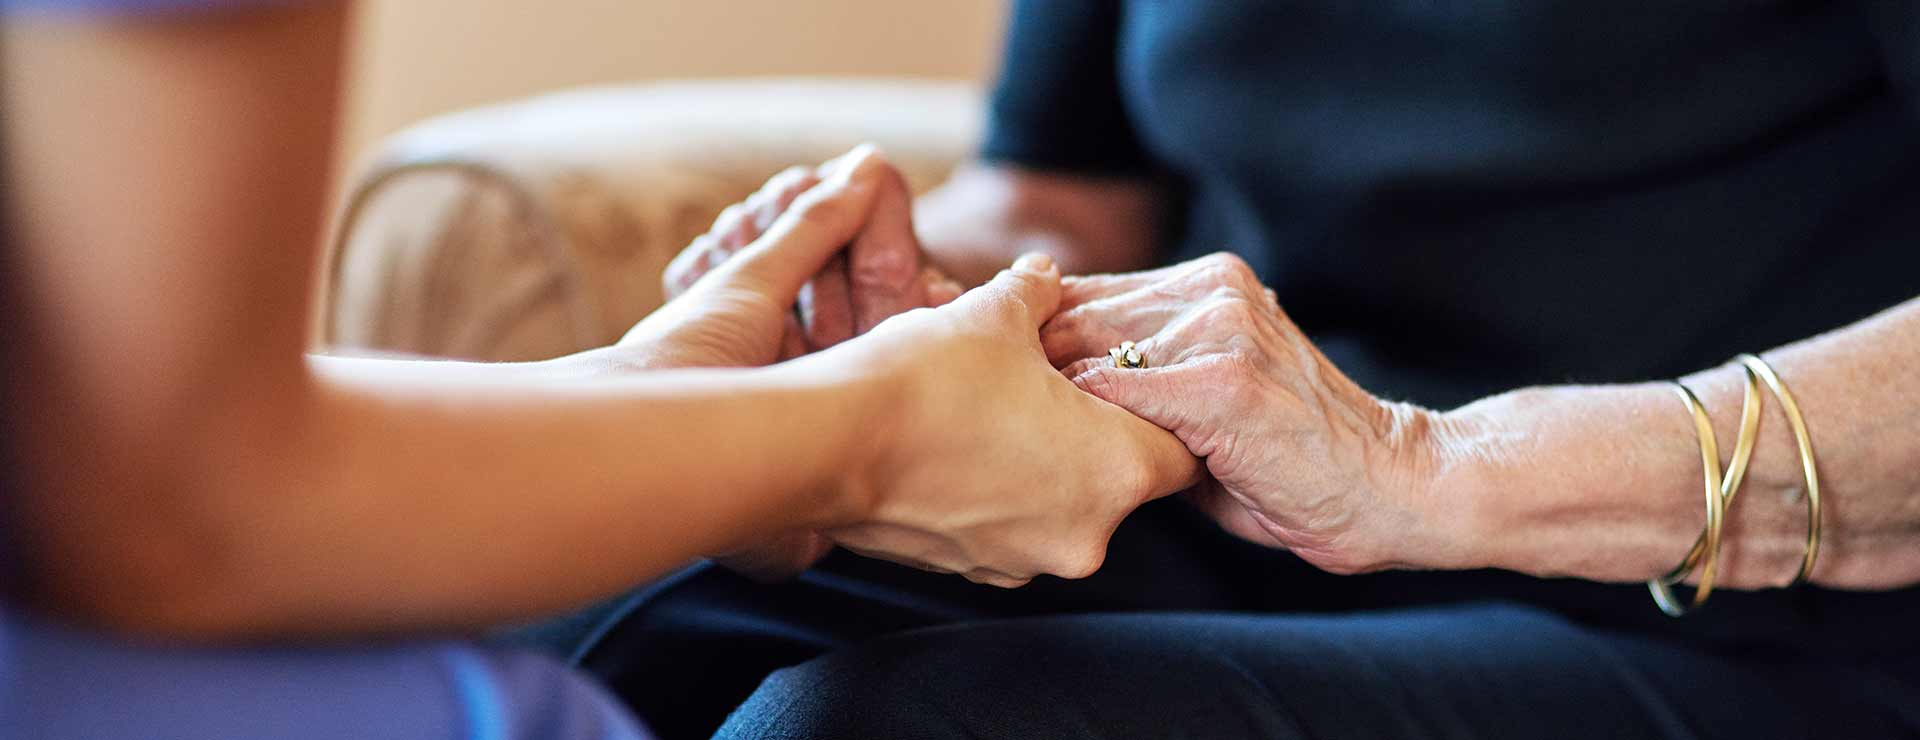 Hands Sex Old Woman